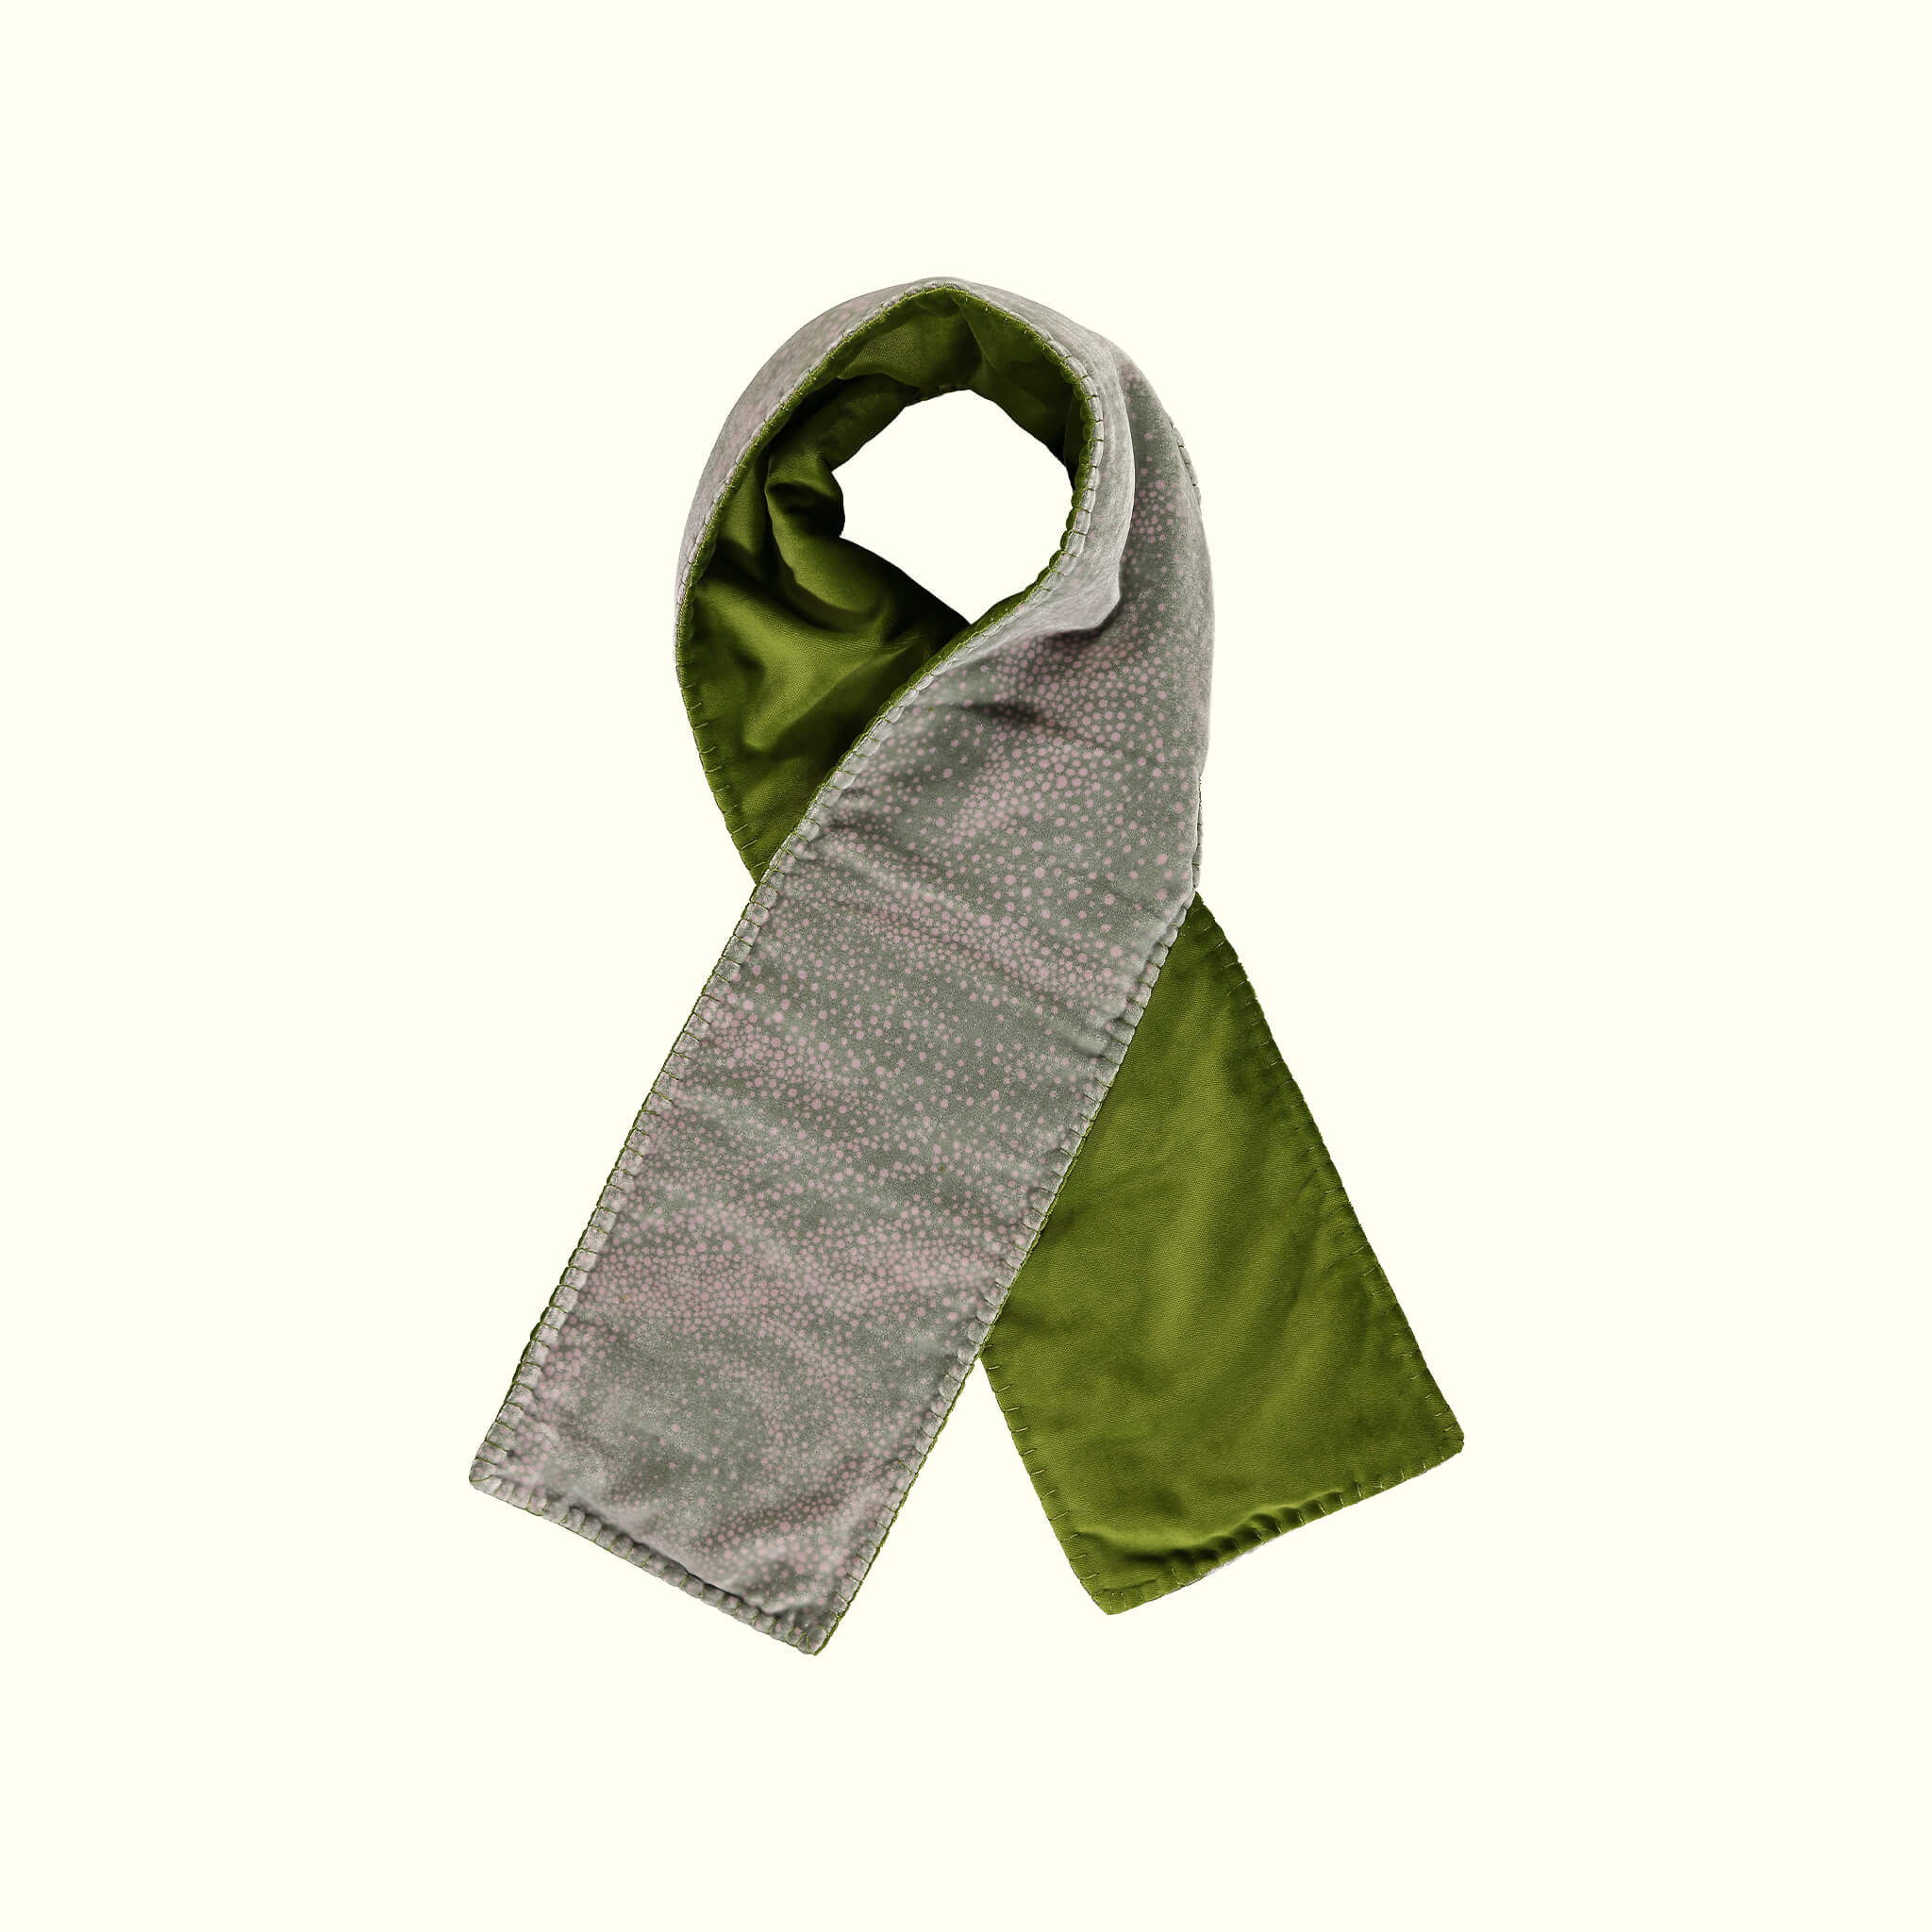 A luxury British silk velvet scarf by GVE in olive and pink Aurora print design.